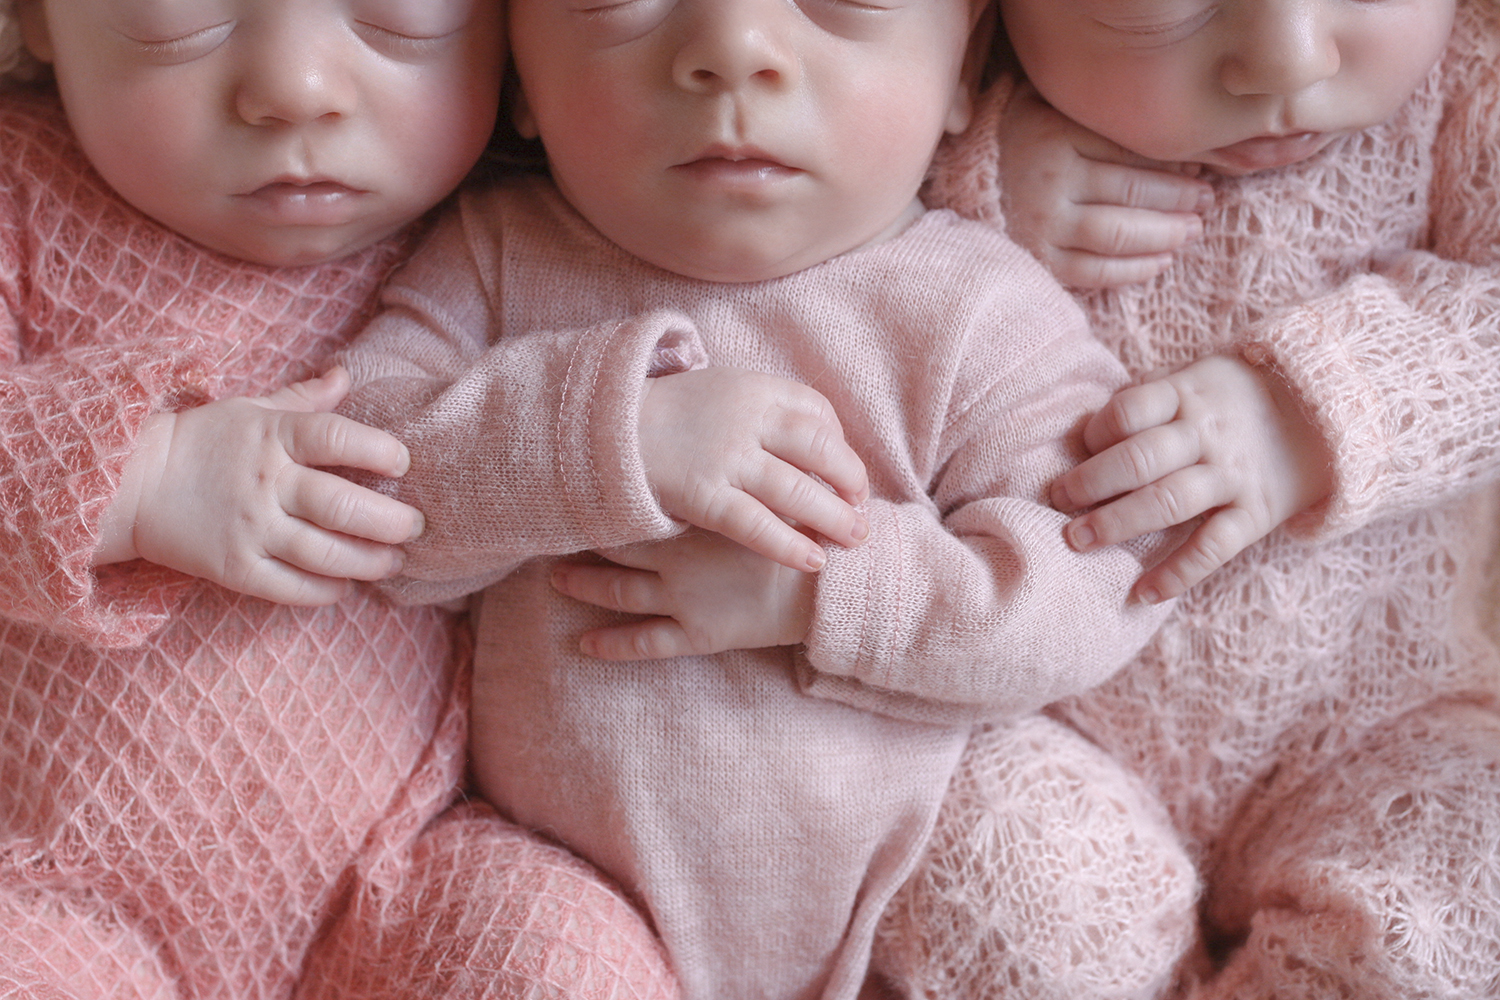 Newborn triplet baby girls wearing pink rompers and tiebacks in a white cane basket with white blanket inside and pink blanket underneath on white wooden floor